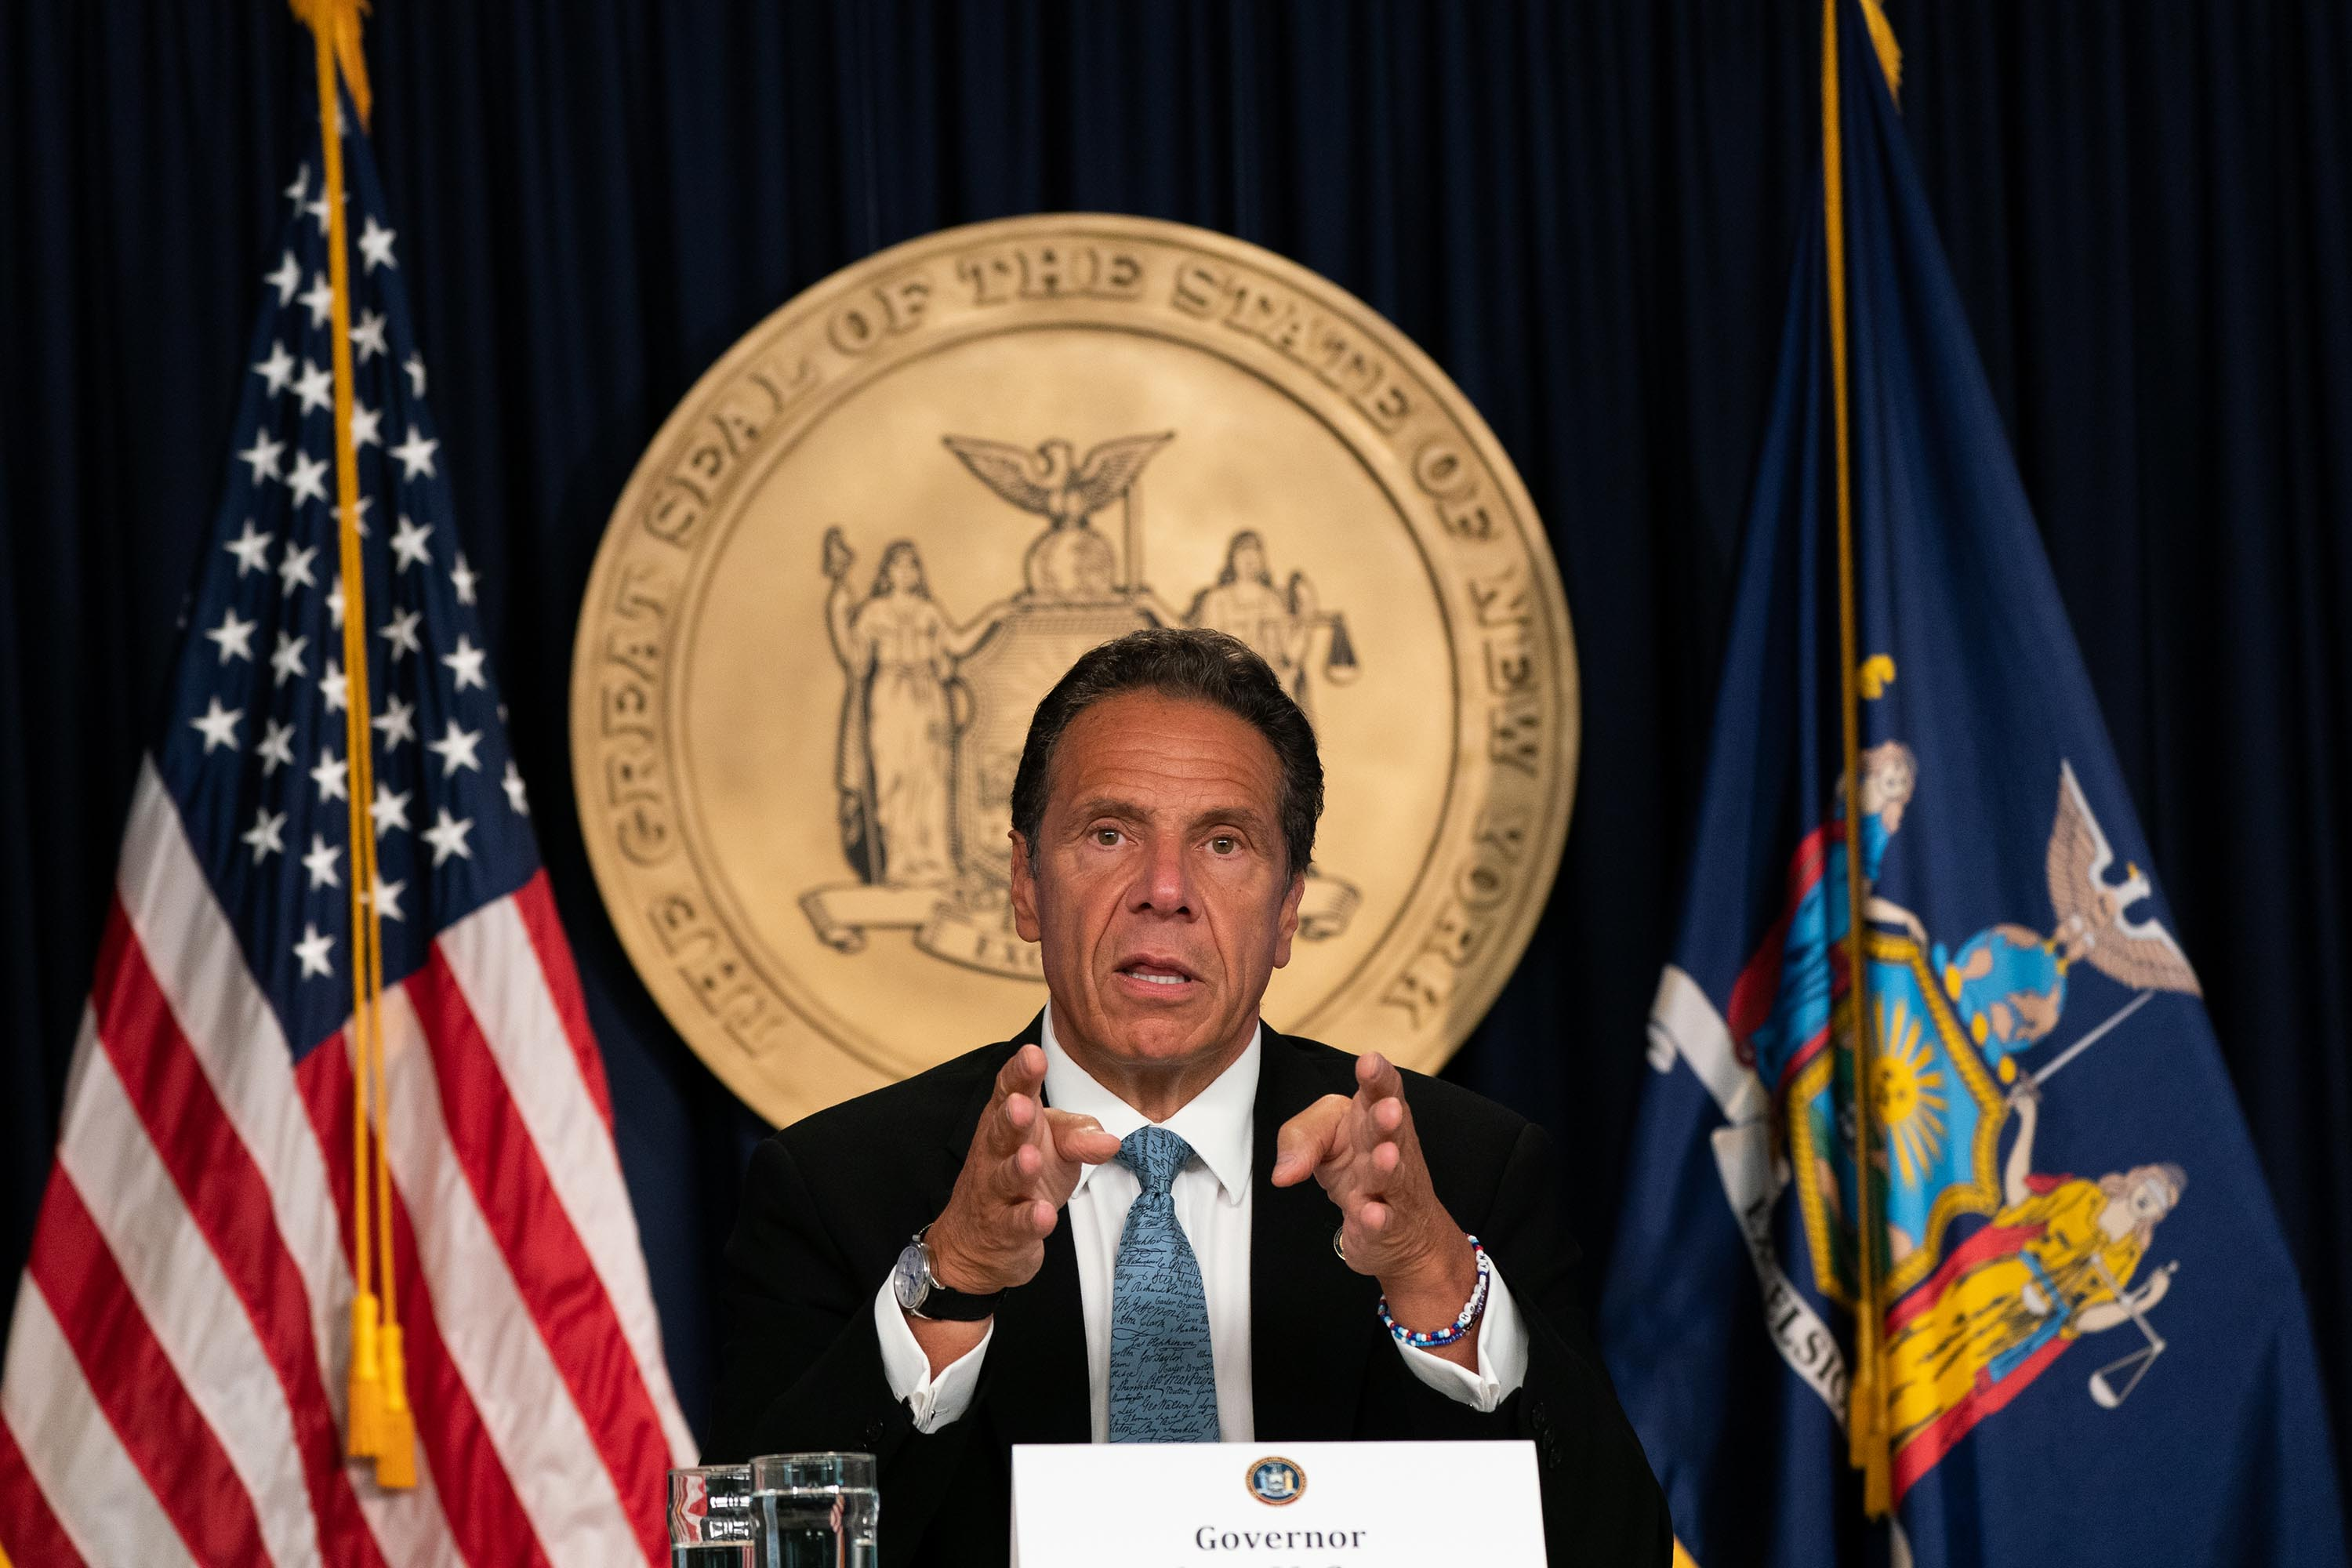 New York Gov. Andrew Cuomo is pictured speaking during a daily media briefing in New York City on July 23.